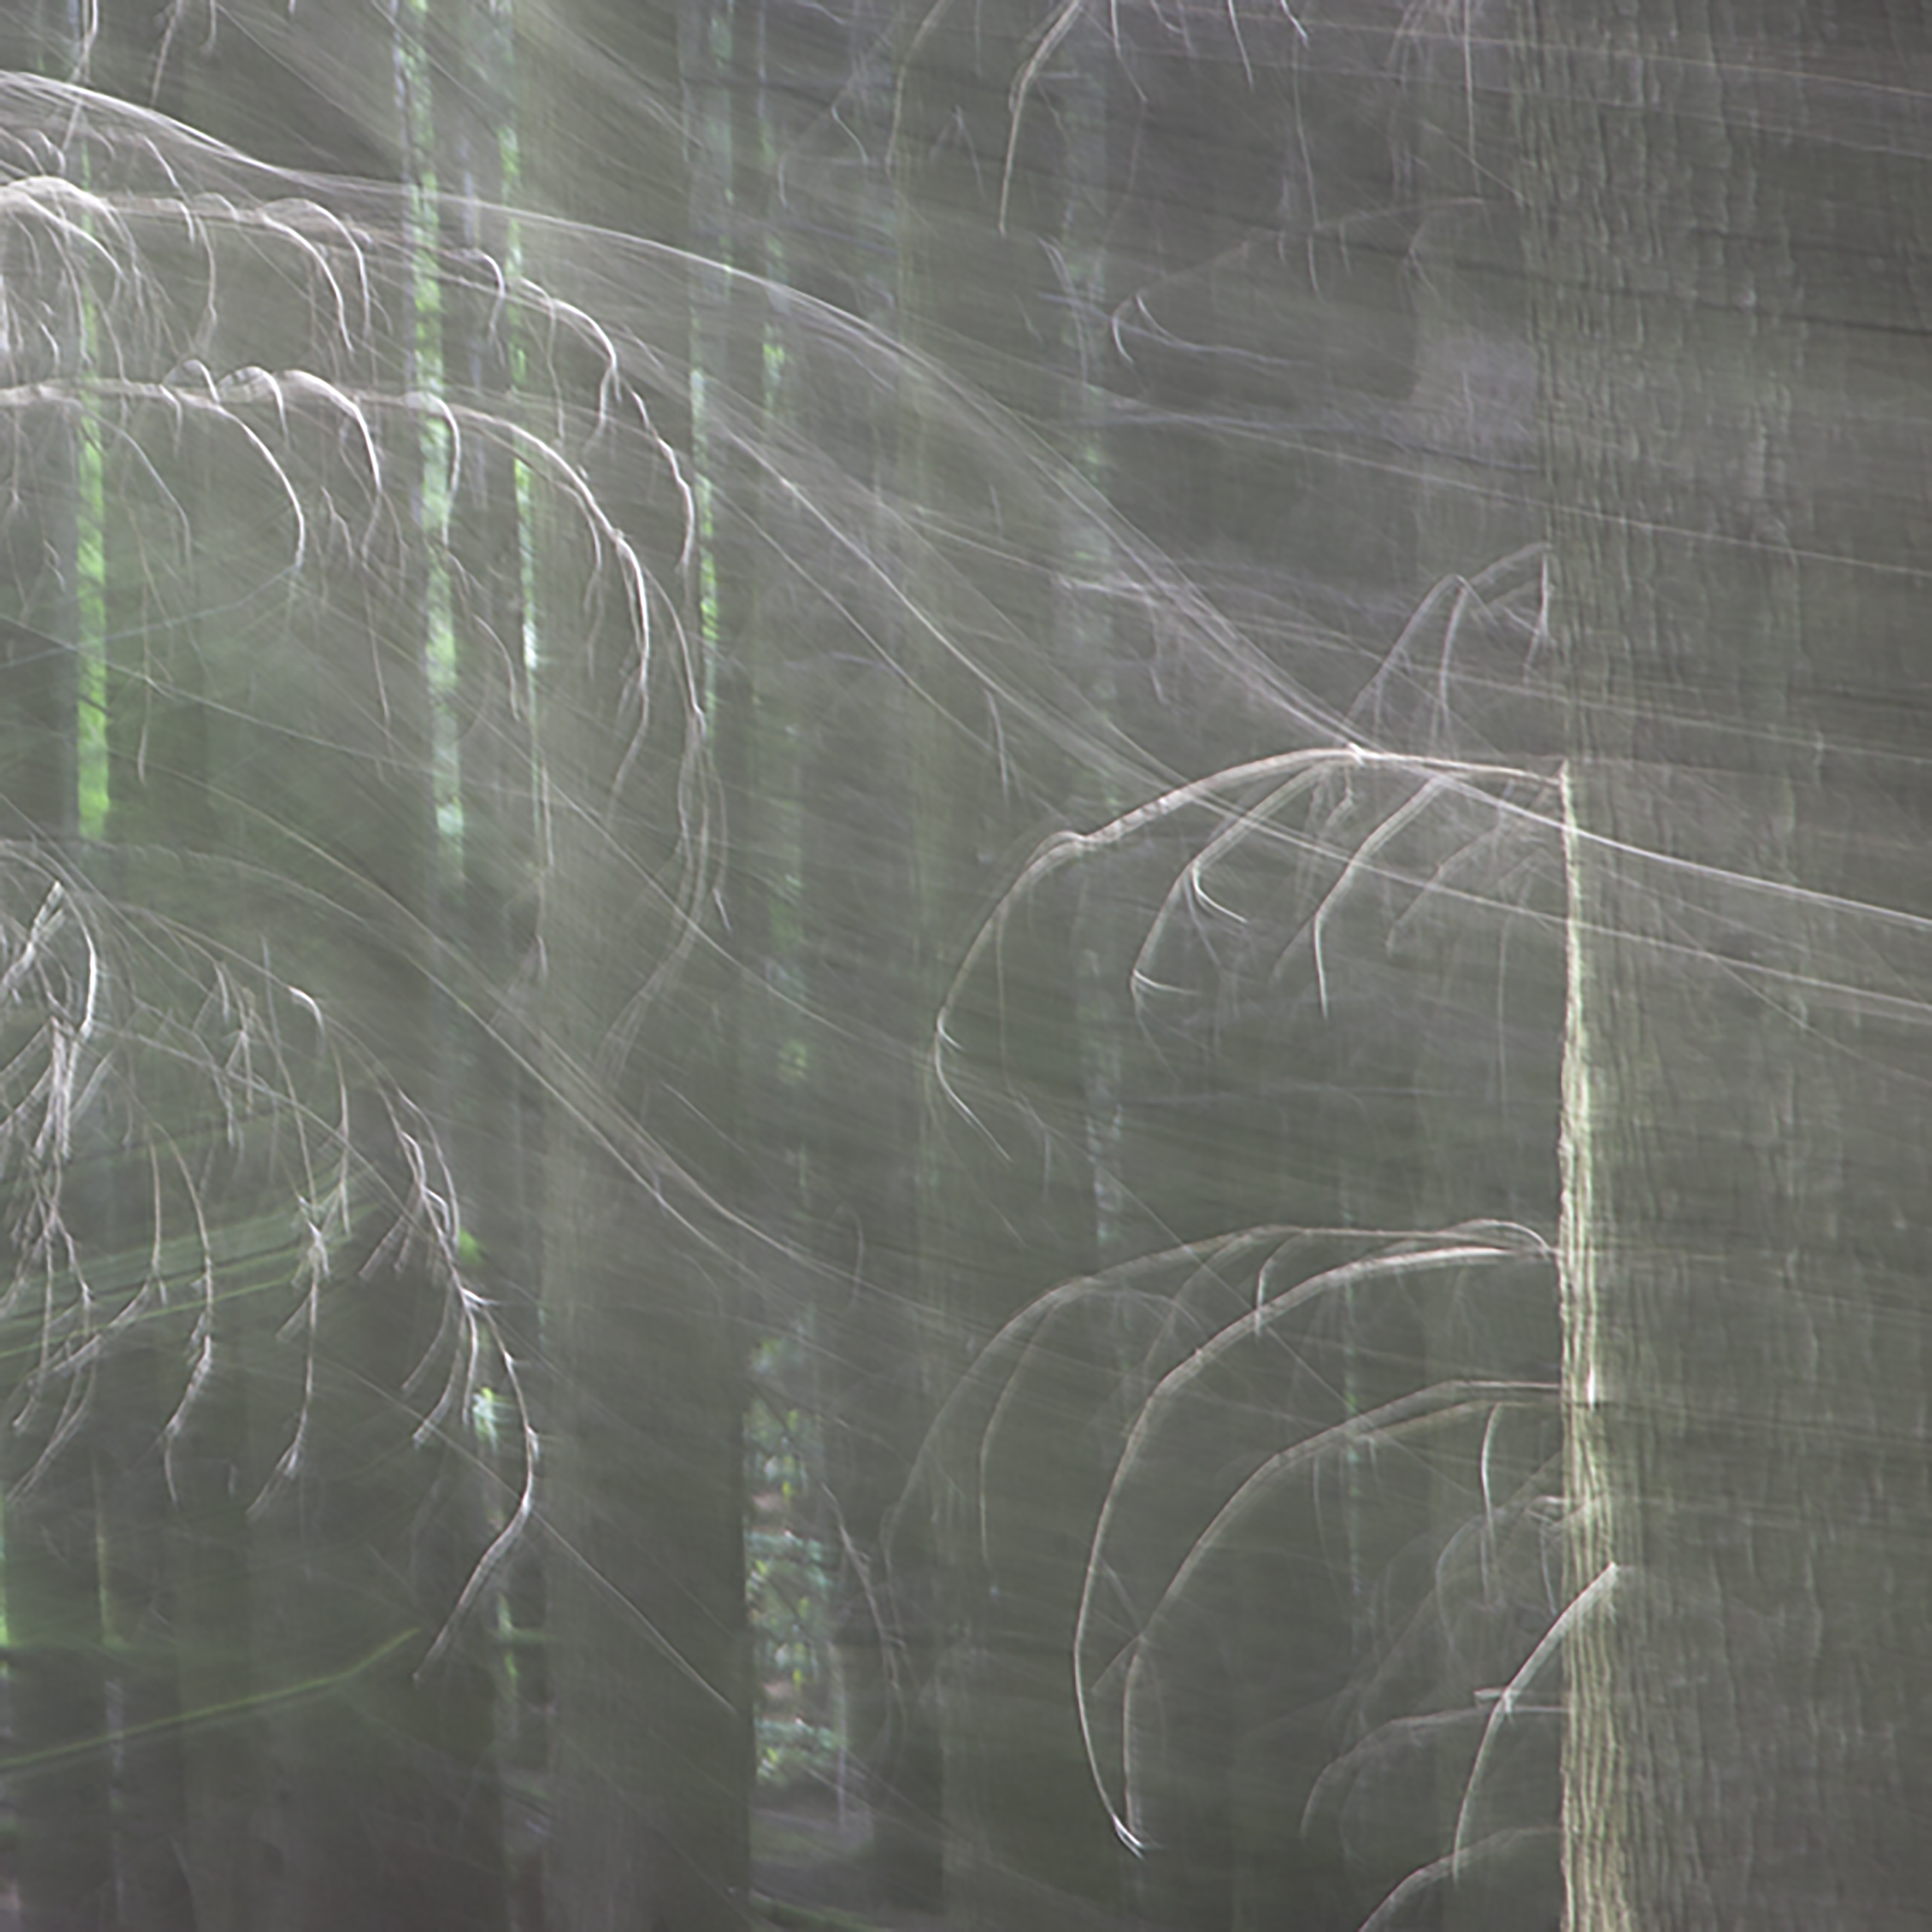 Woods Abstract 3.jpg